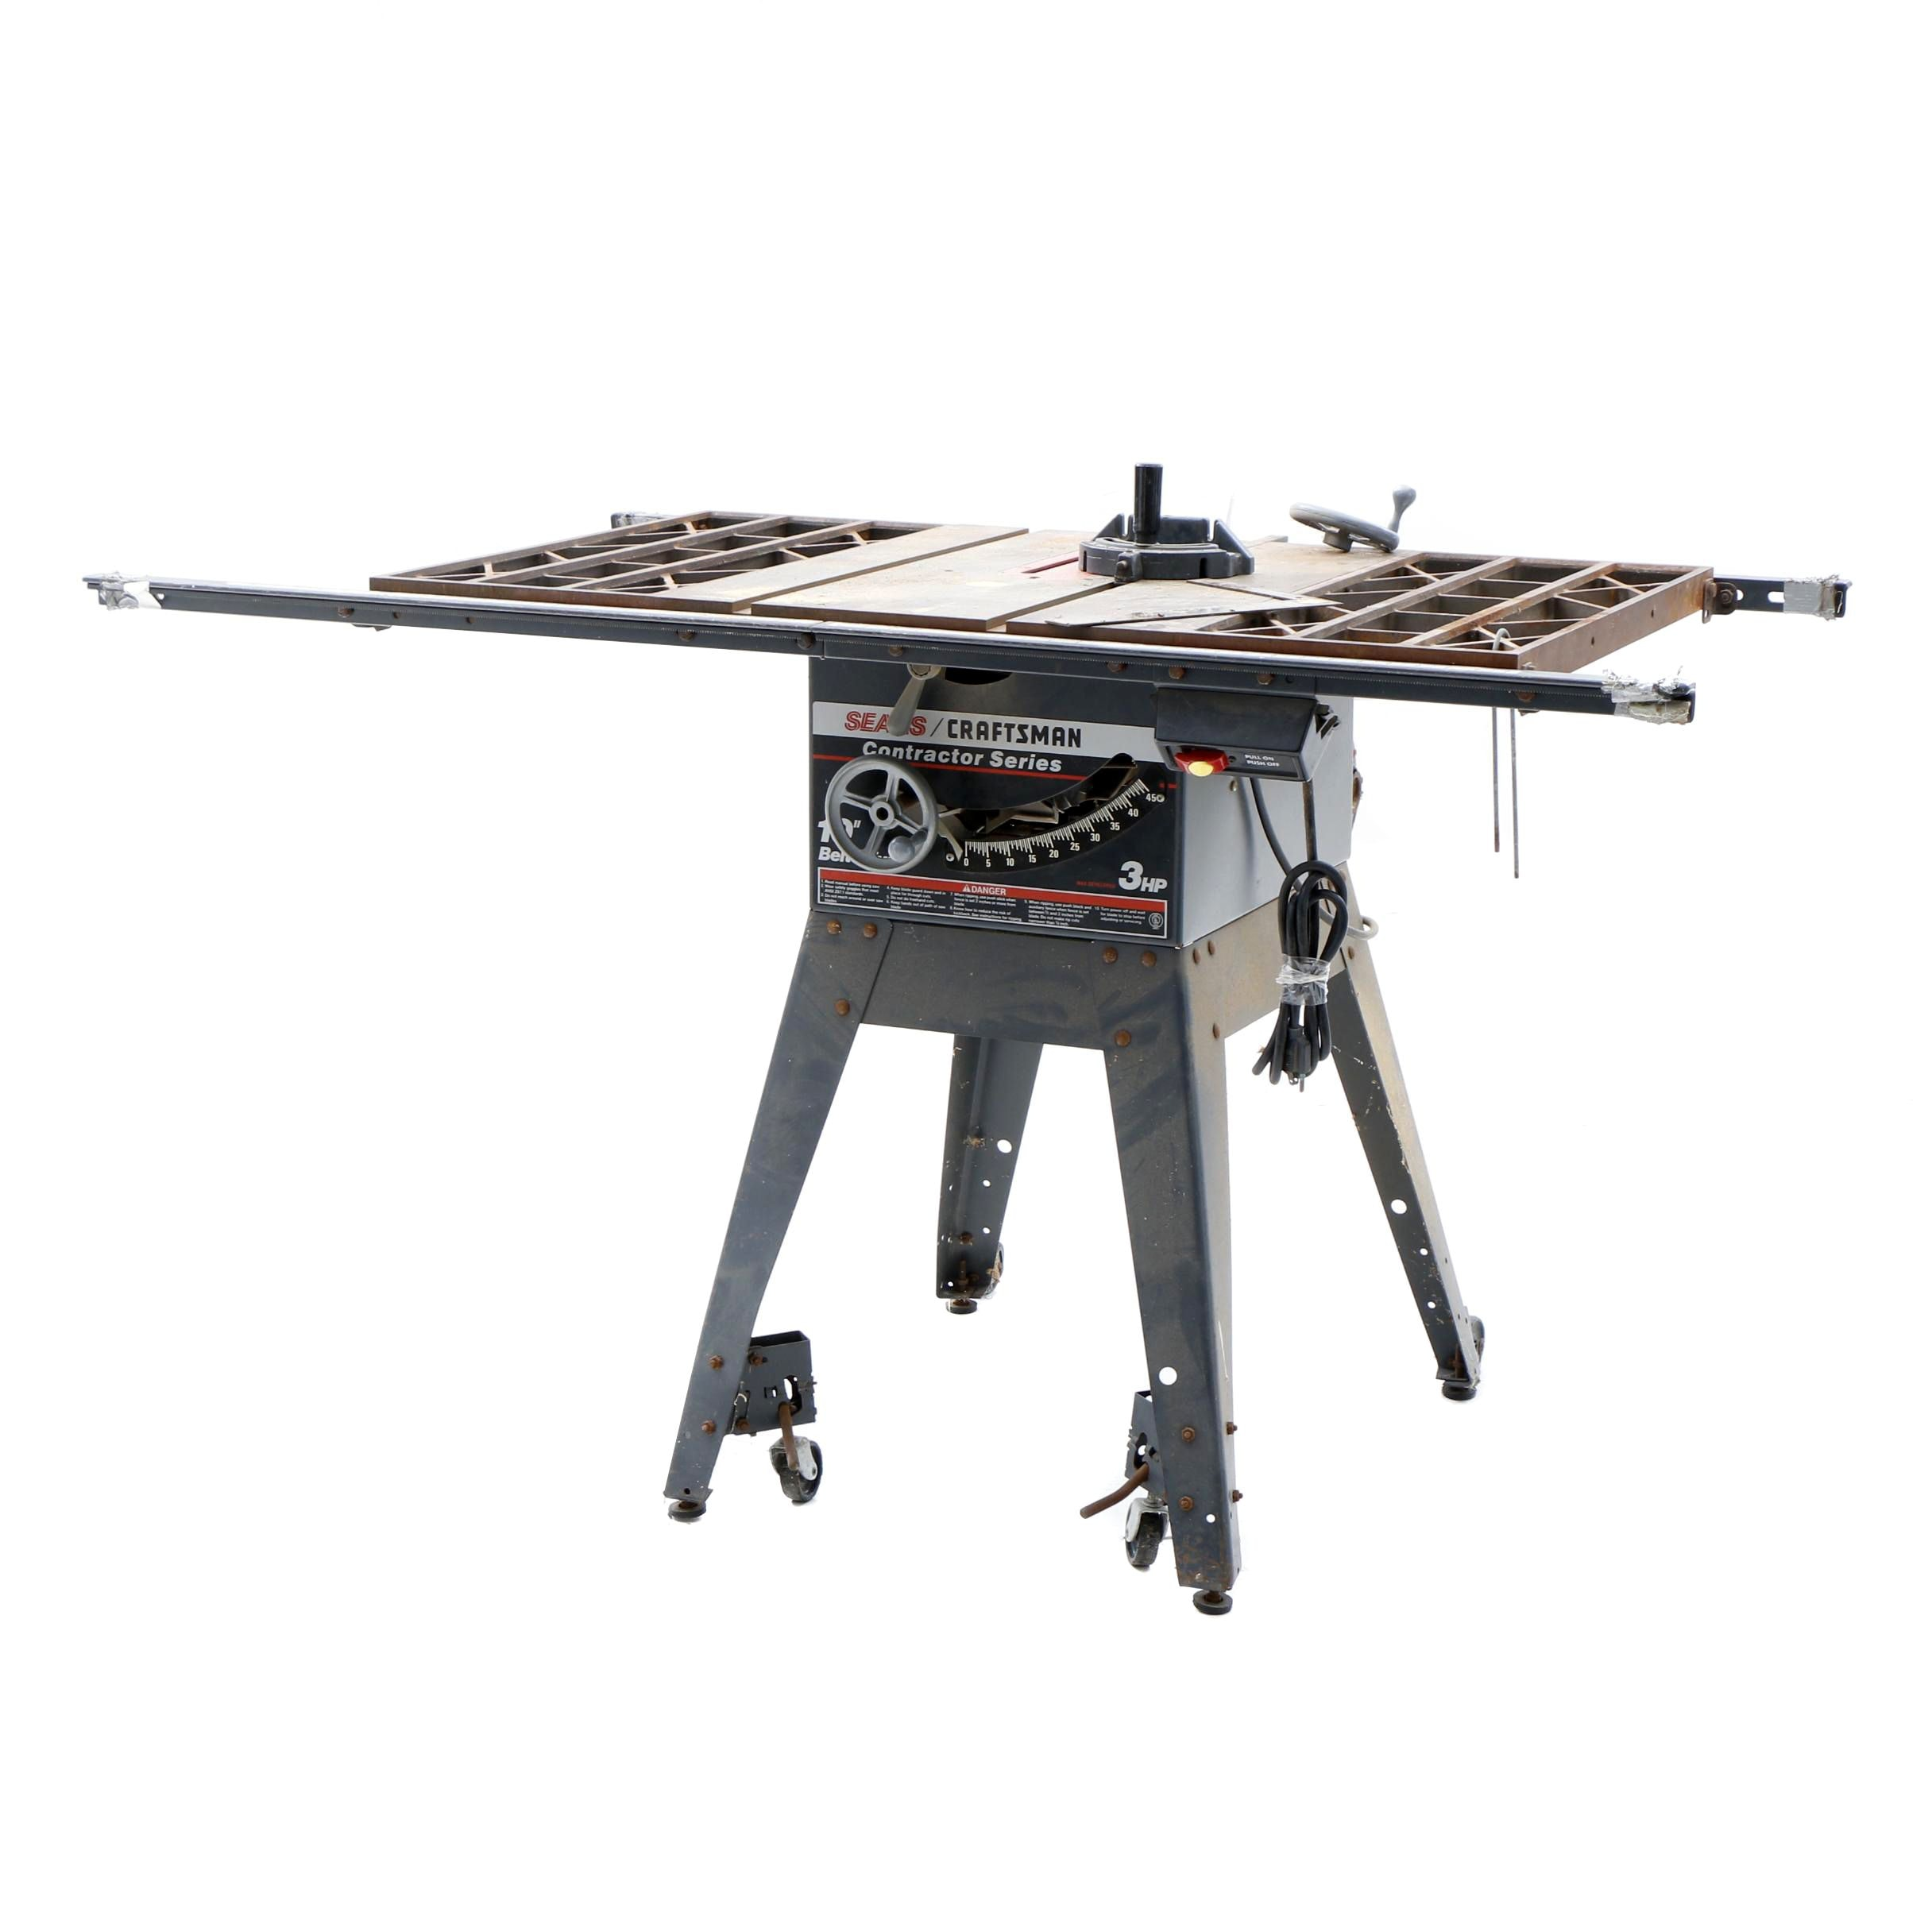 "Sears Craftsmen 10"" Belt Drive Table Saw"